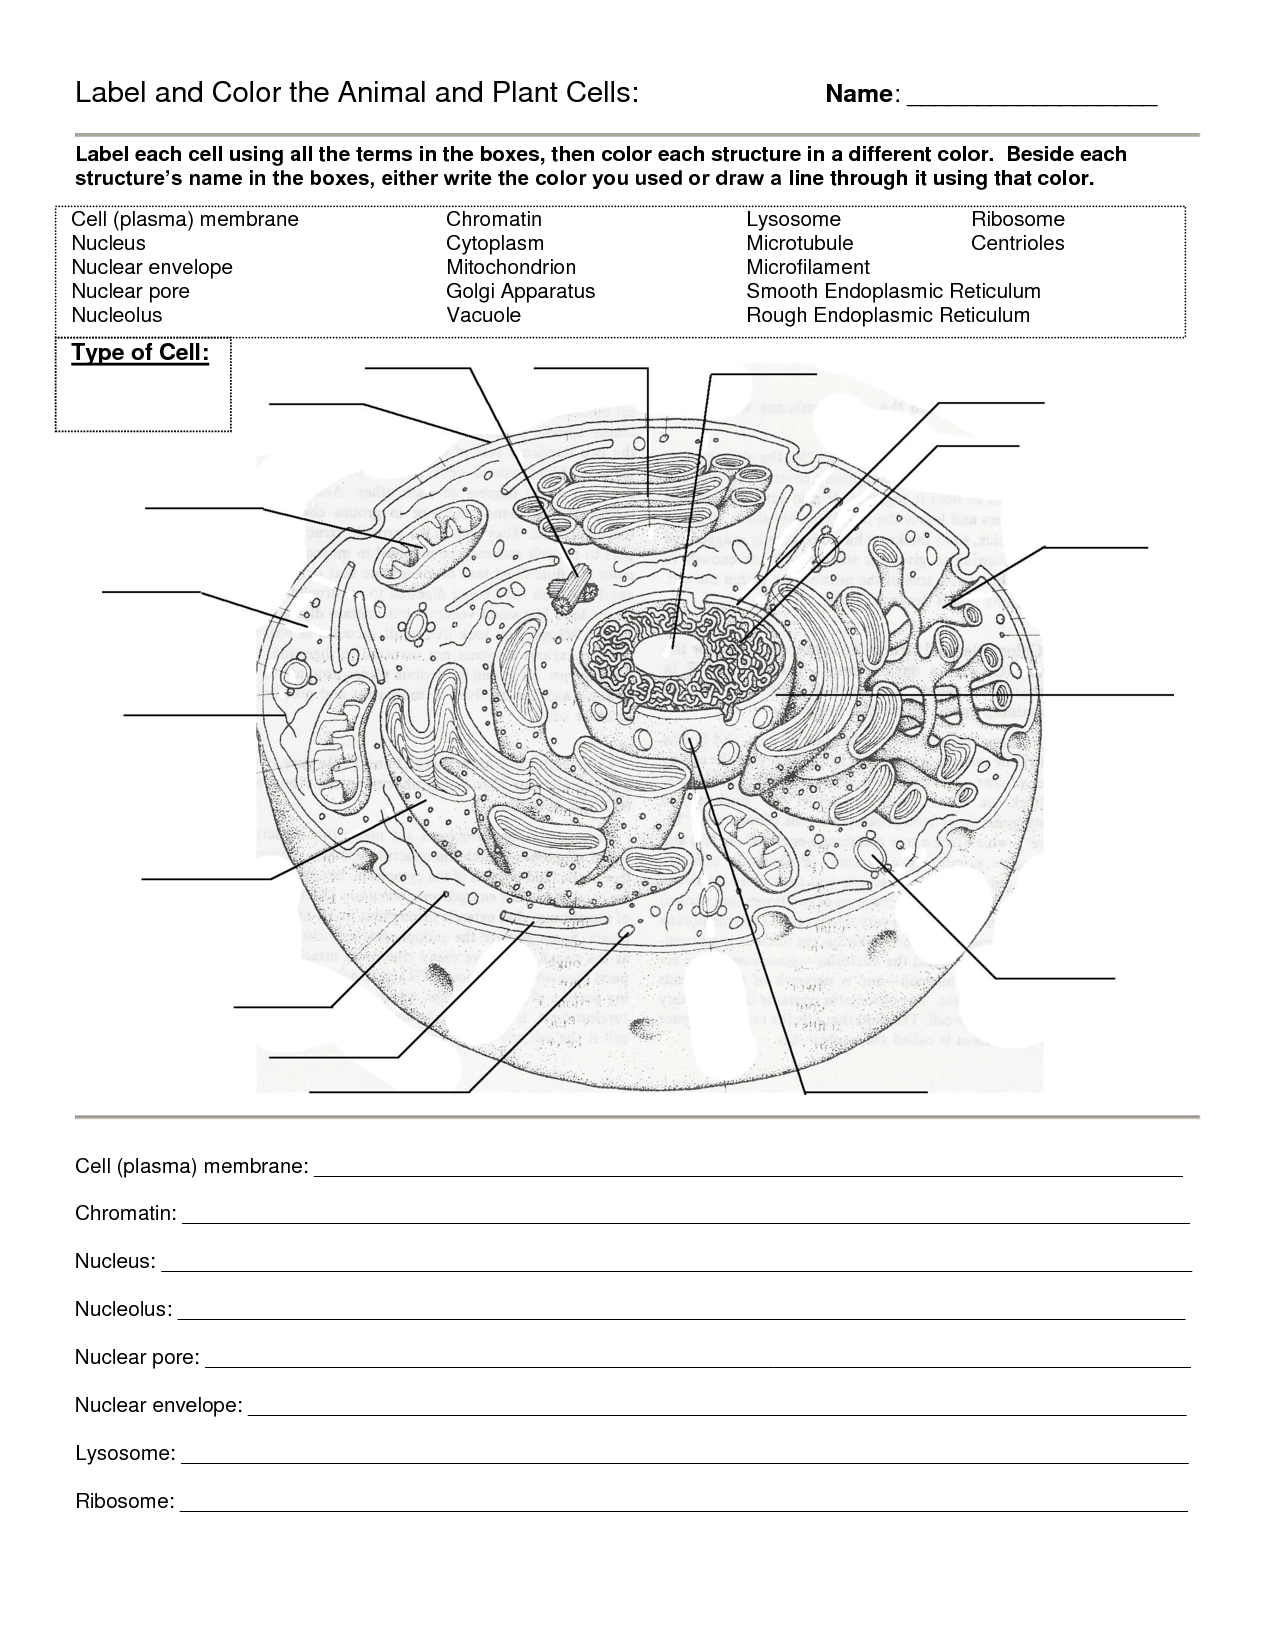 Worksheet : Animal Cell Coloring Animal Color Page Worksheet And - Free Printable Cell Worksheets